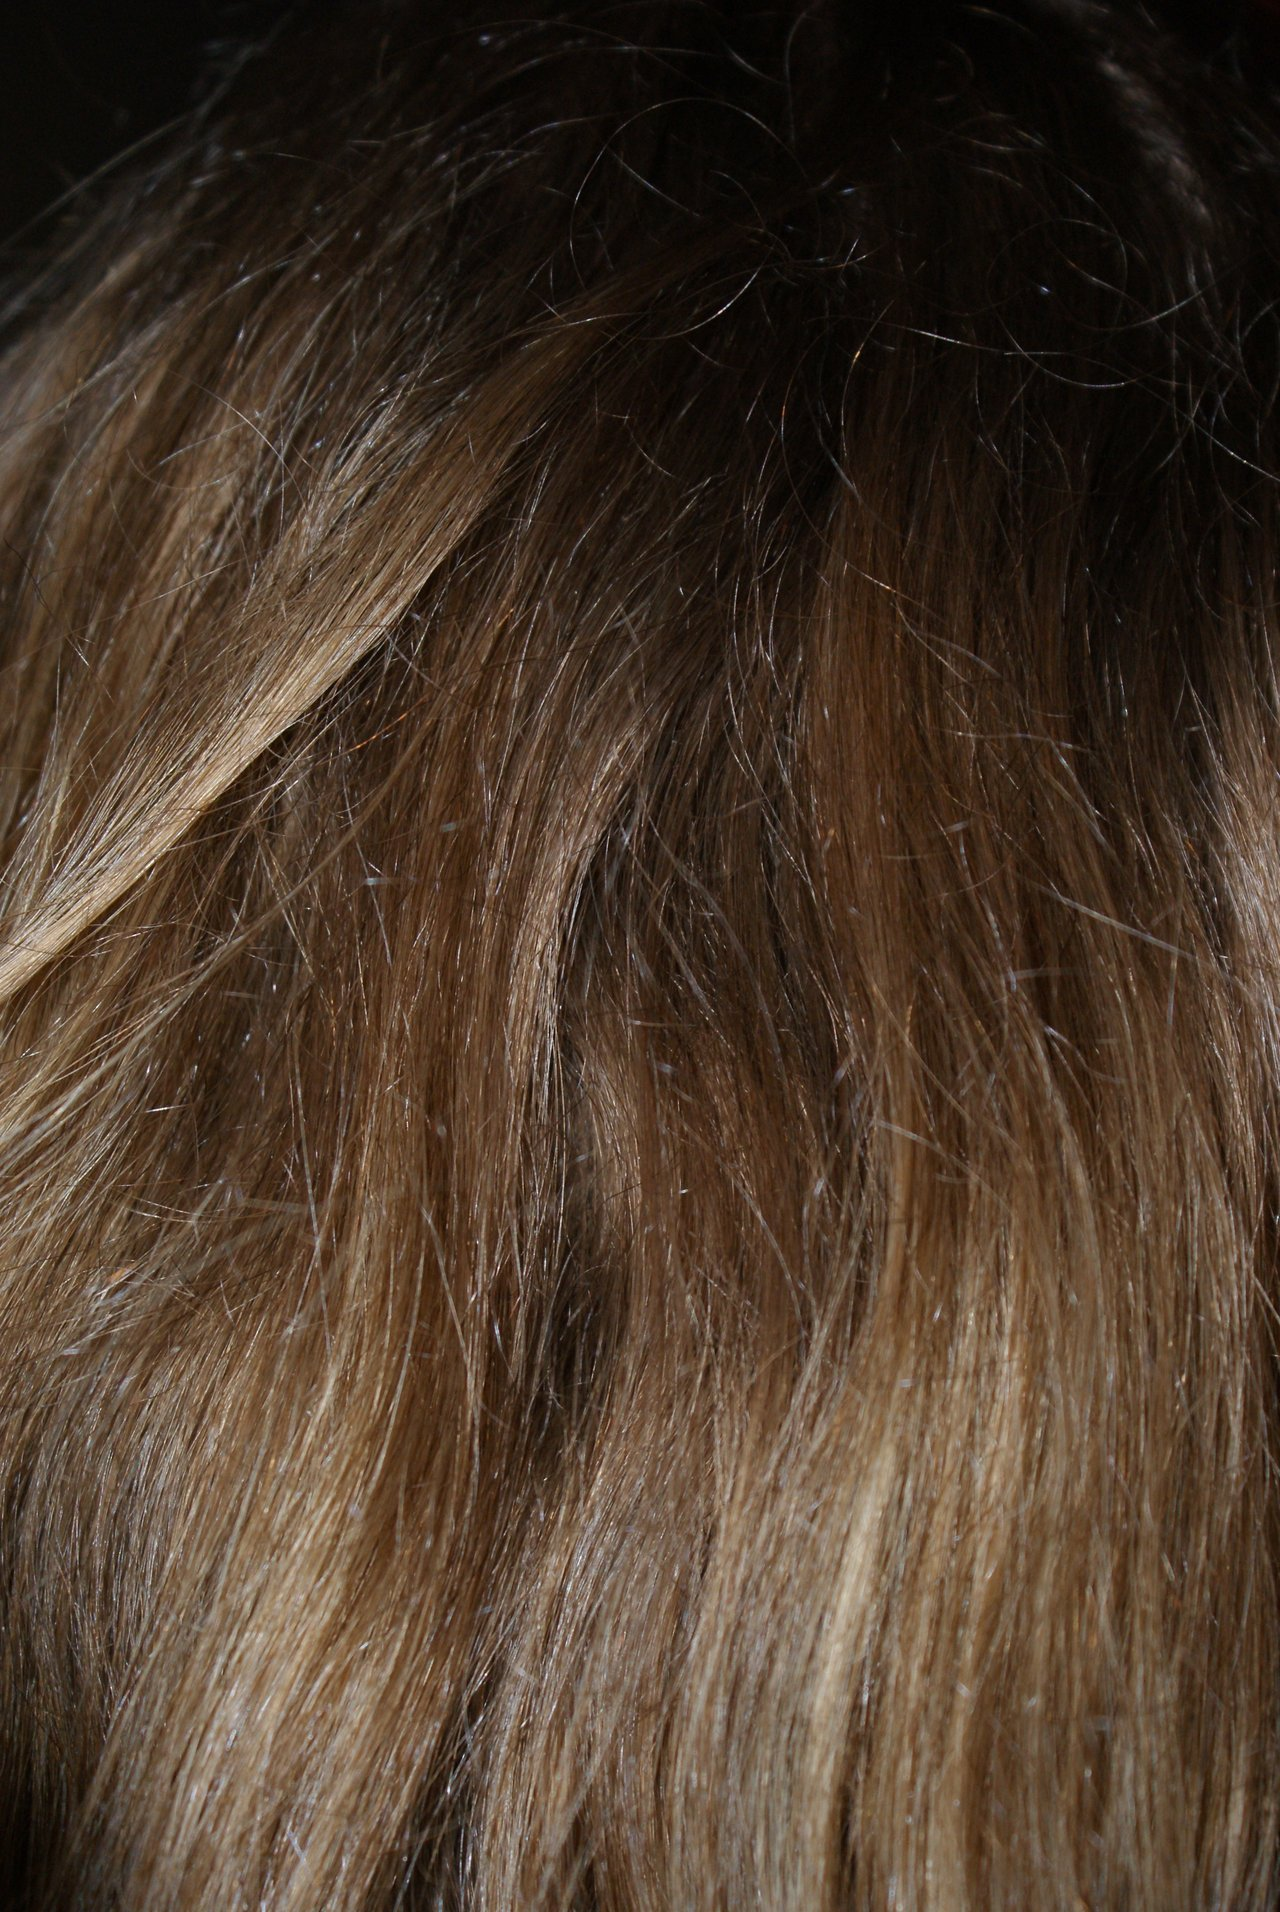 hair texture, background, brown hair texture, background